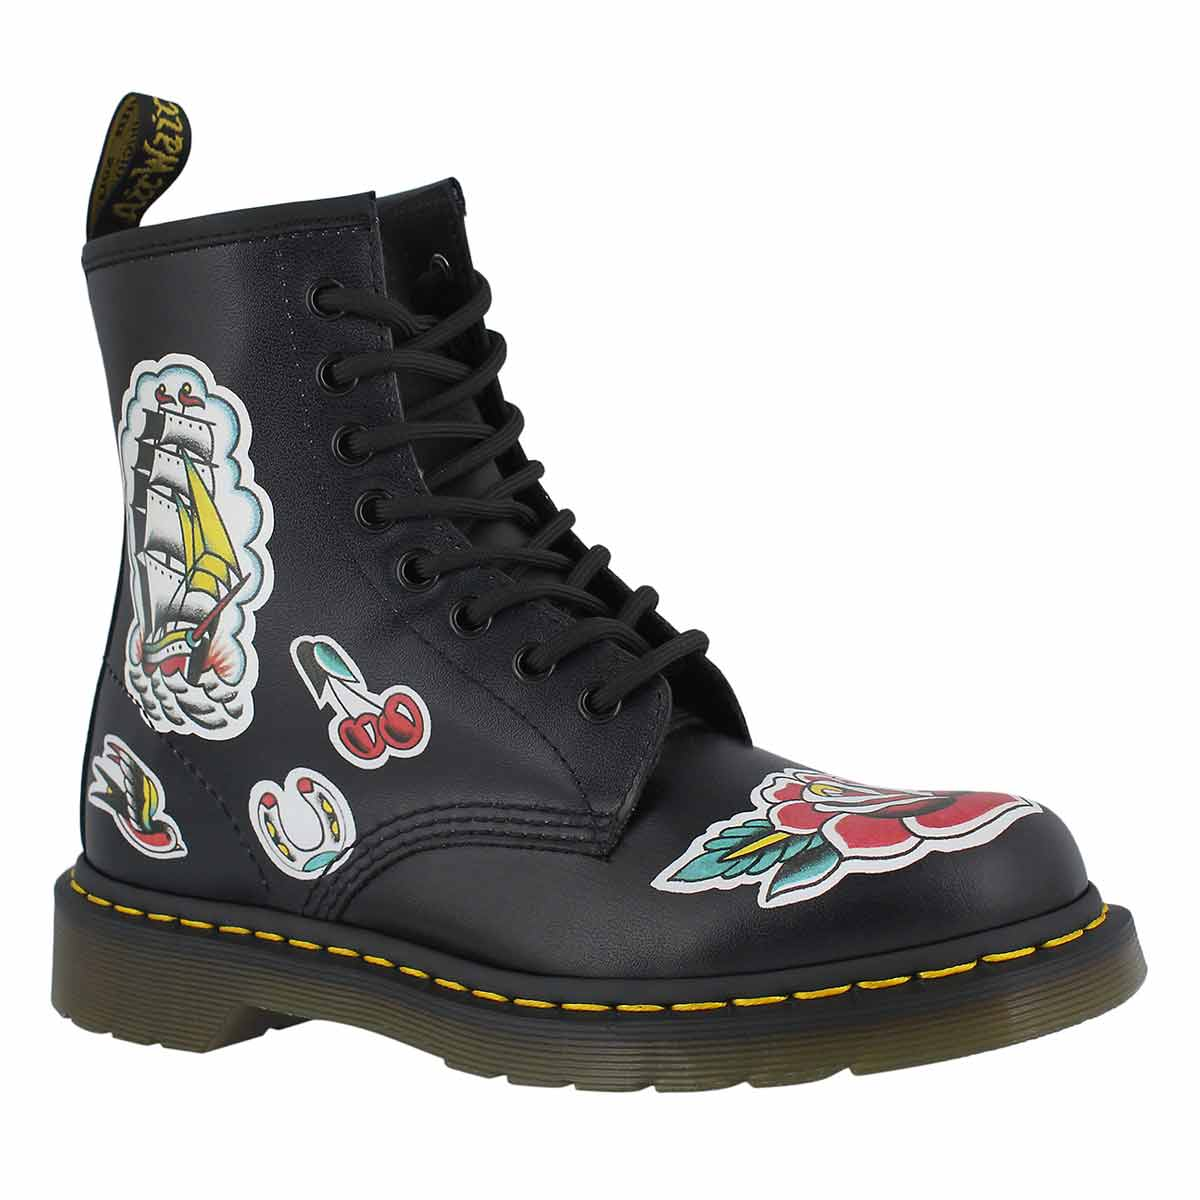 Lds 1460 O.T Asia blk/grey boot